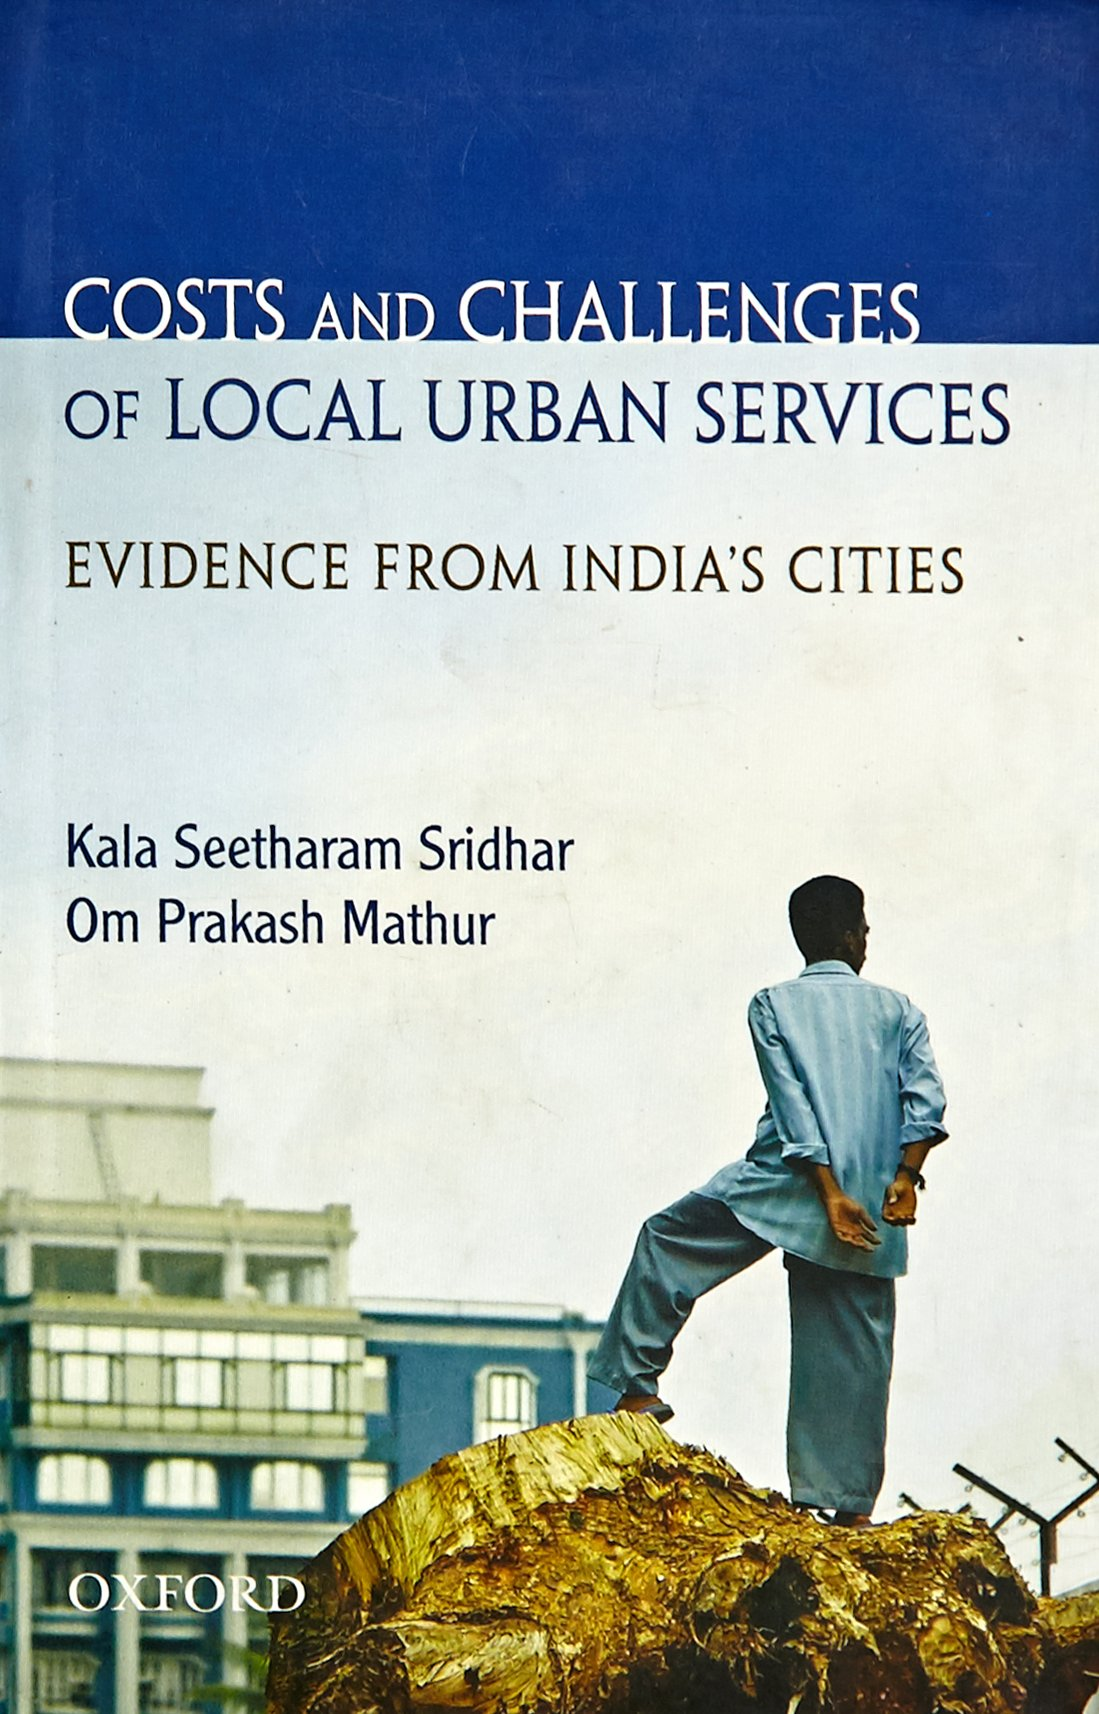 Costs And Challenges of Local Urban Services: Evidence from India's Cities by Oxford University Press